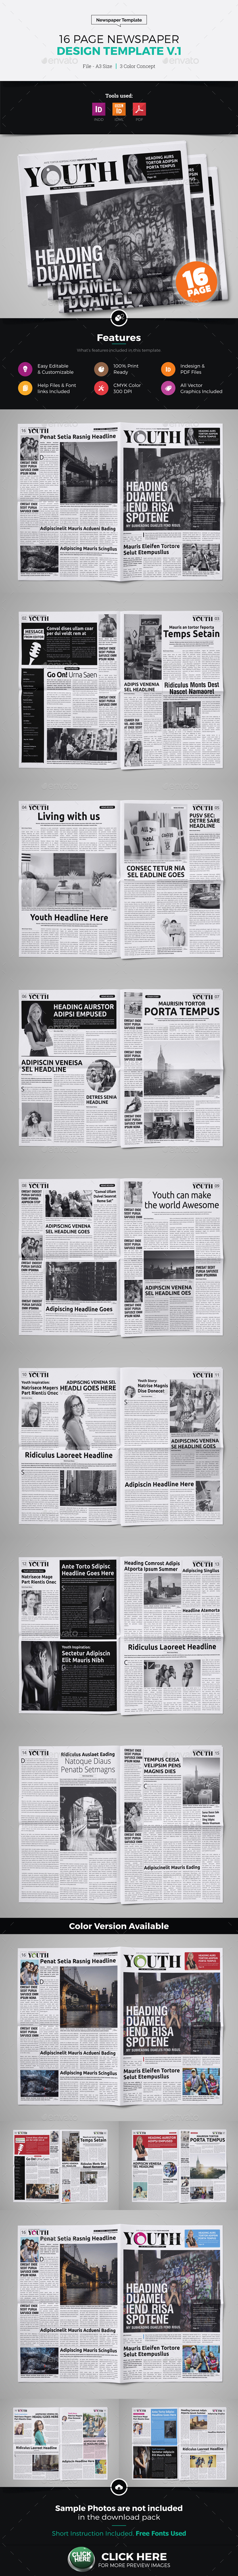 16 Page Newspaper Design v1 - Newsletters Print Templates